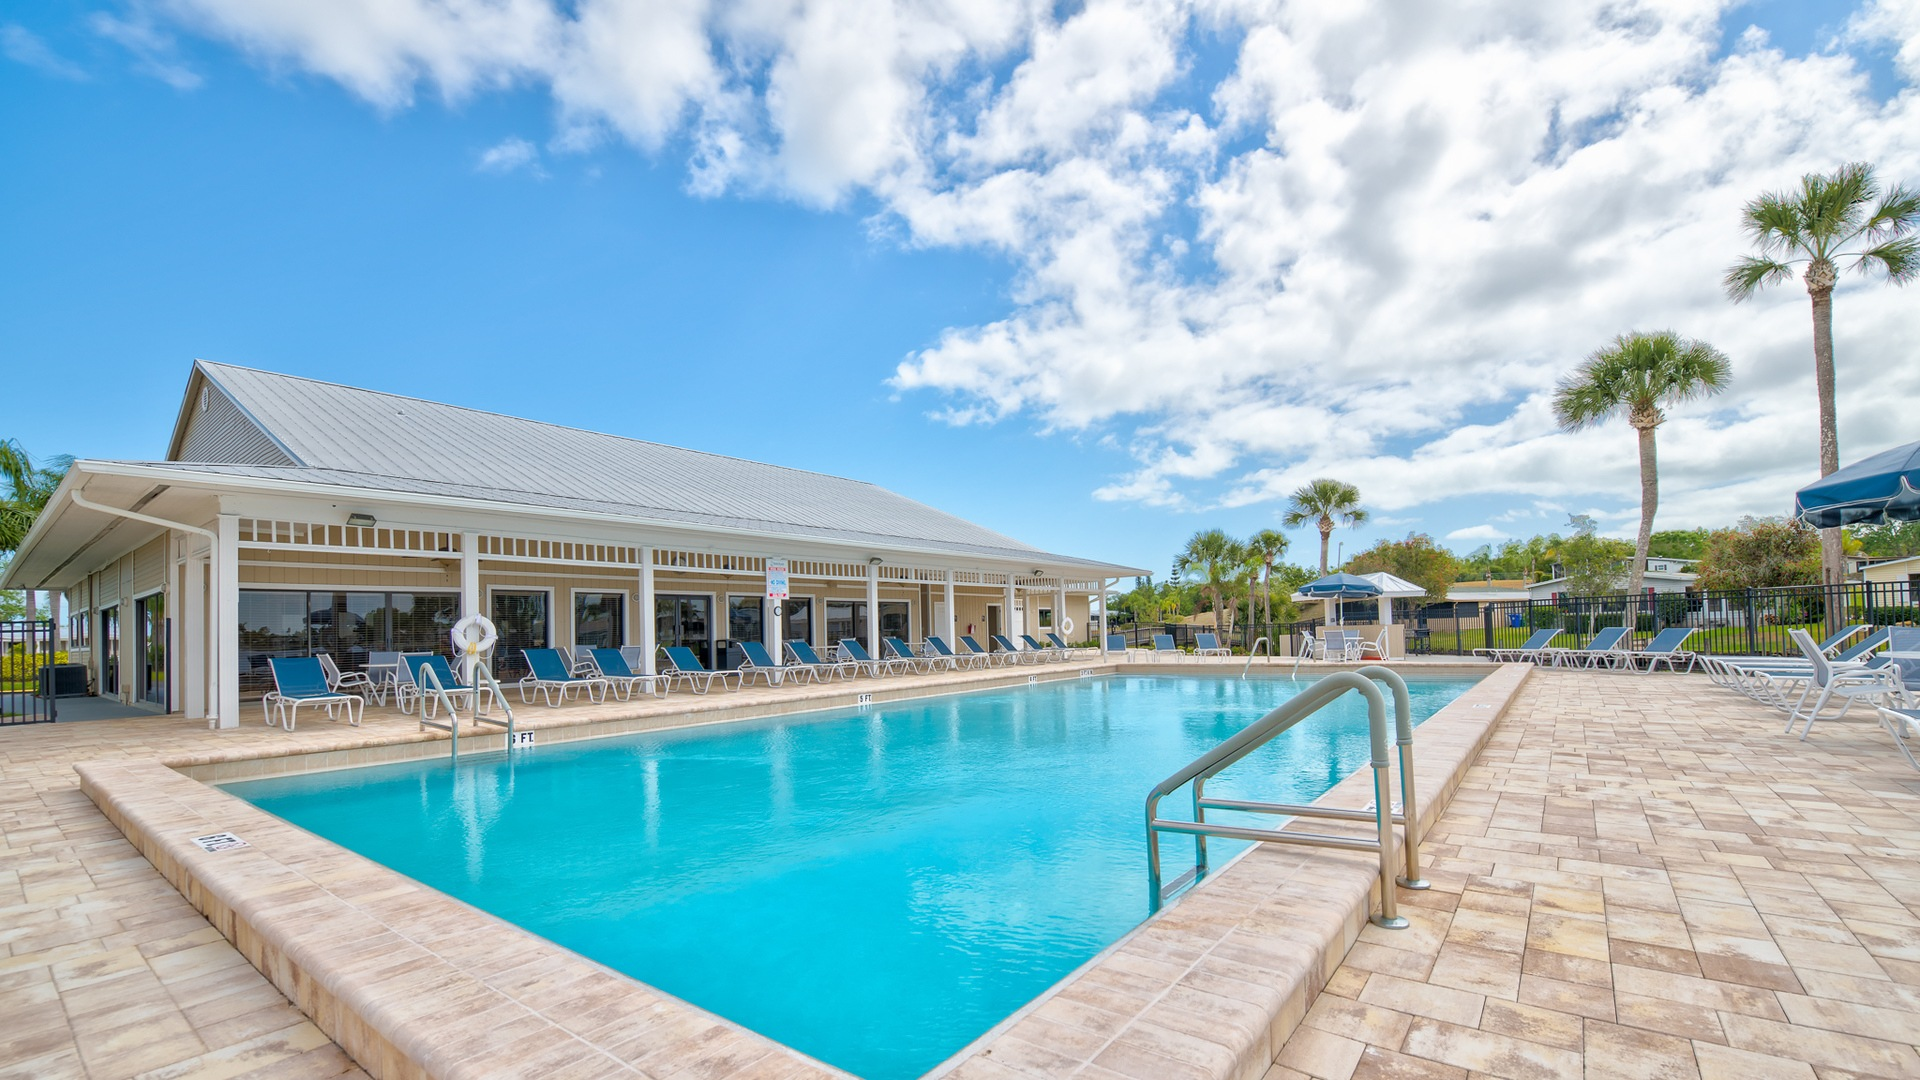 Park Place 55+ Manufactured Homes Community Swimming Pool in Sebastian, FL